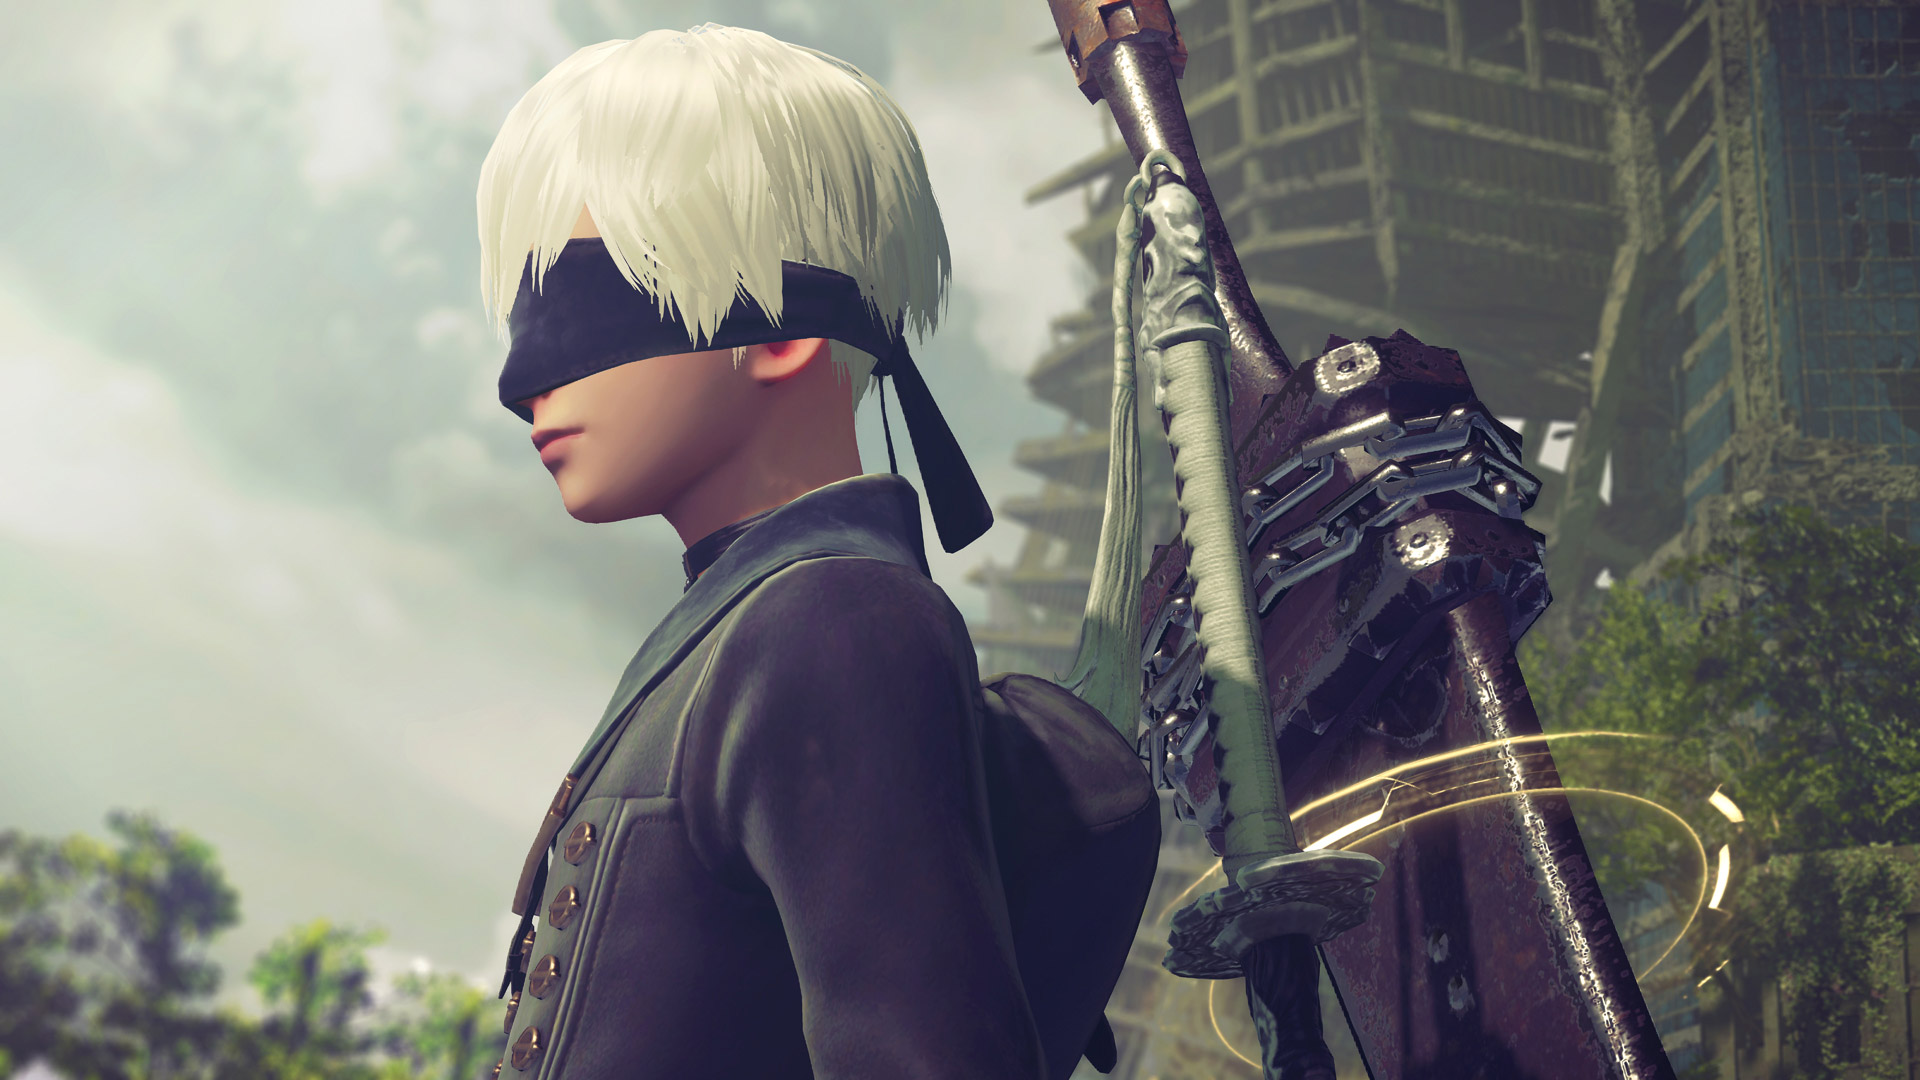 Free NieR: Automata Wallpaper in 1920x1080